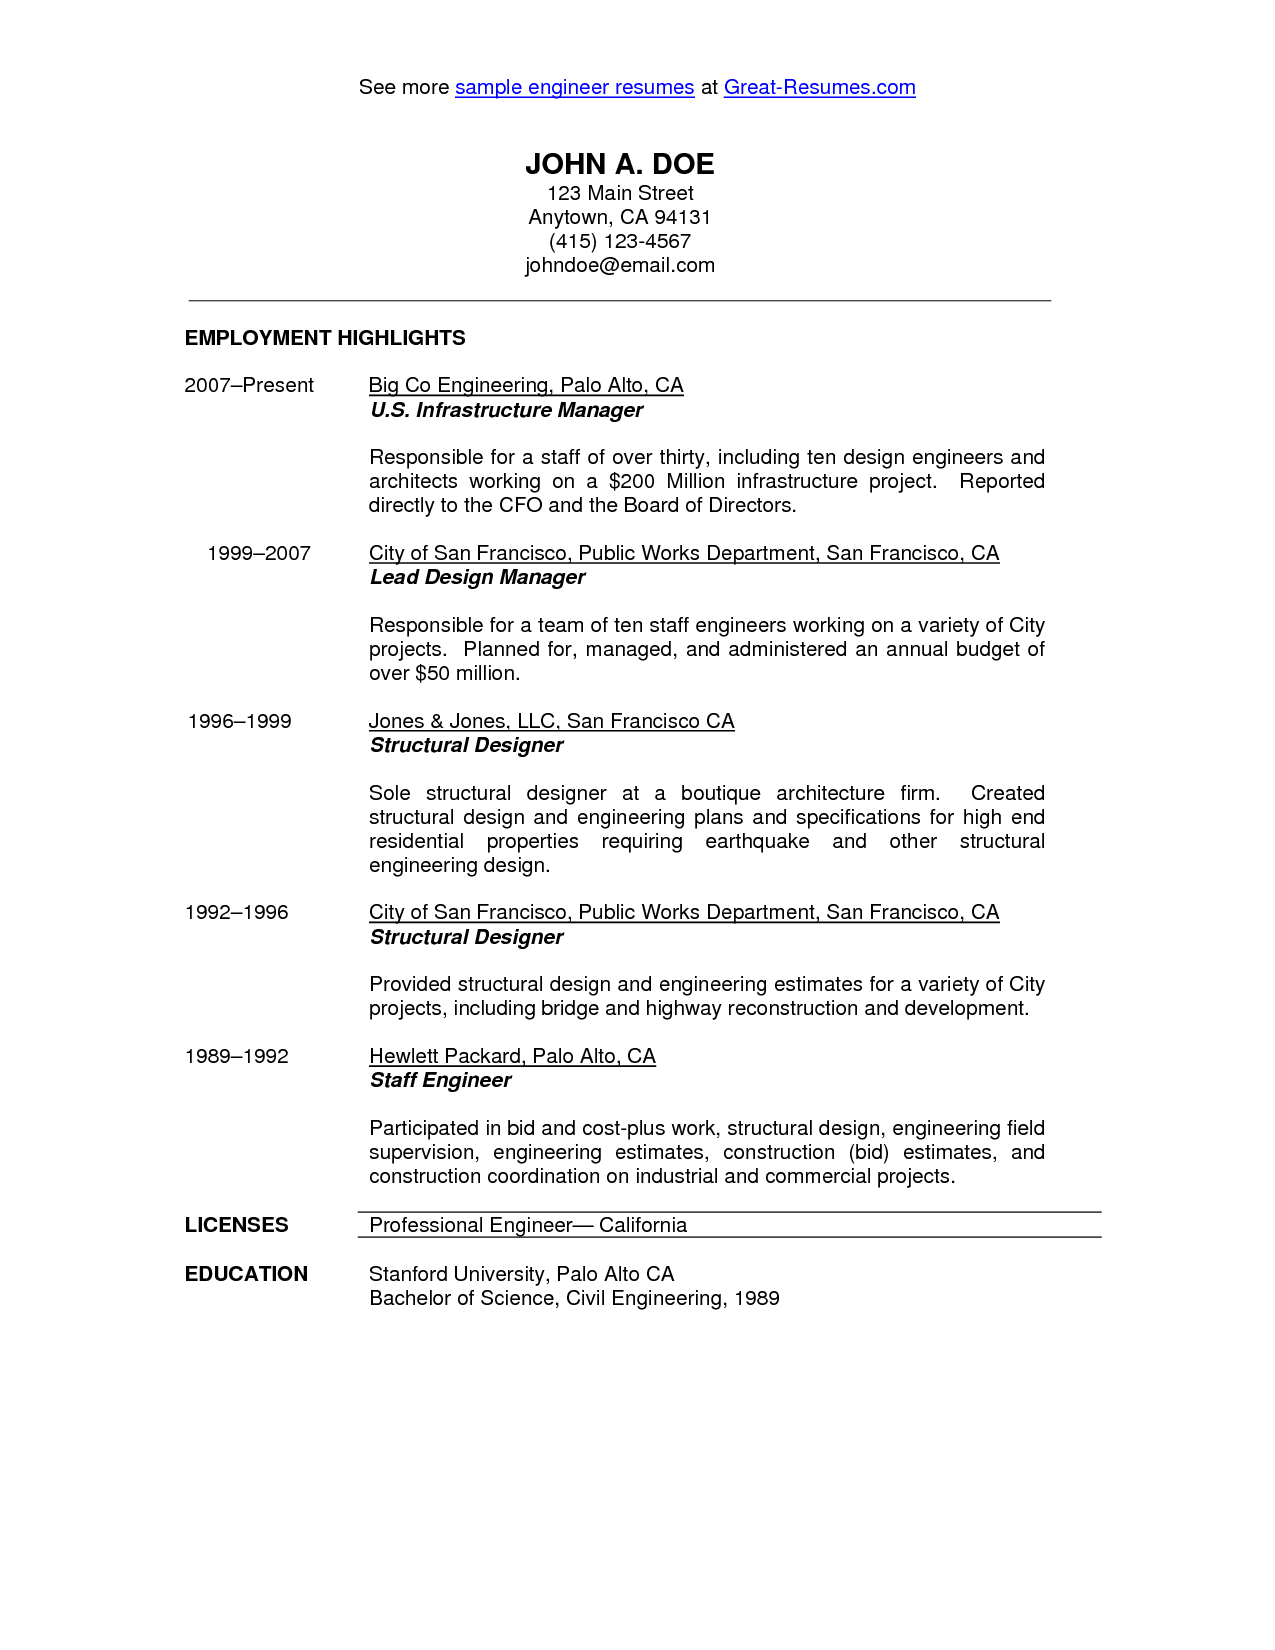 Sioncoltd Resume Sample Letter Best Ideas Army Mechanical Engineer